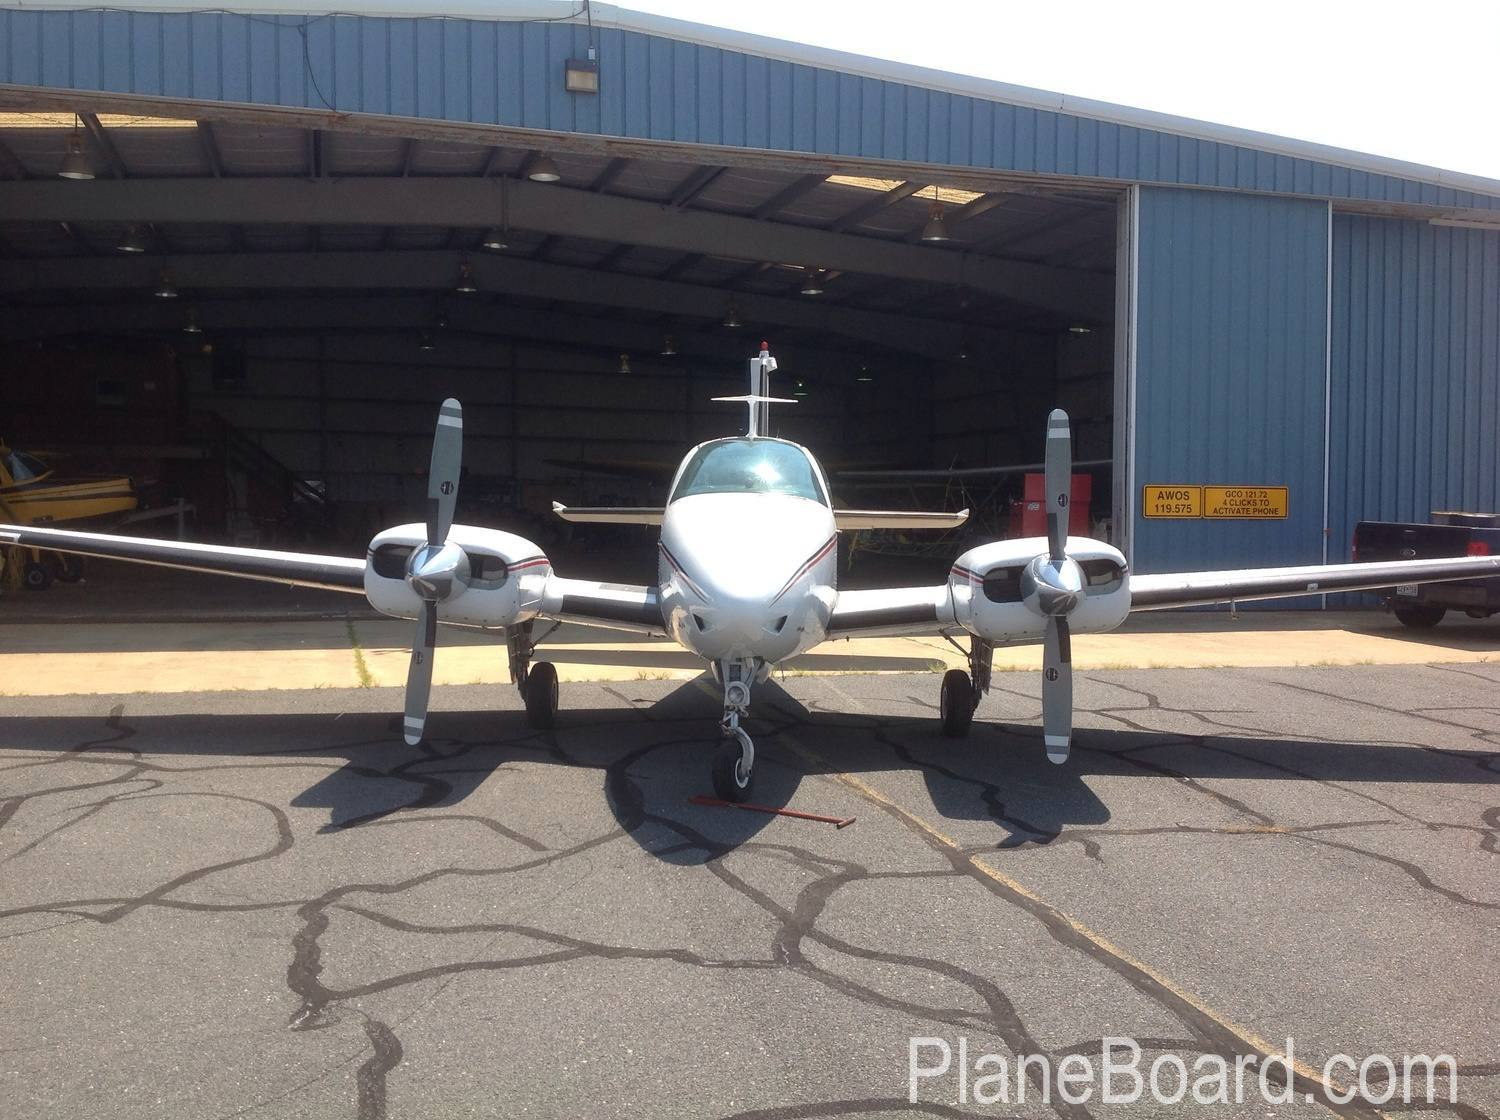 1972 Beechcraft B55 Baron primary